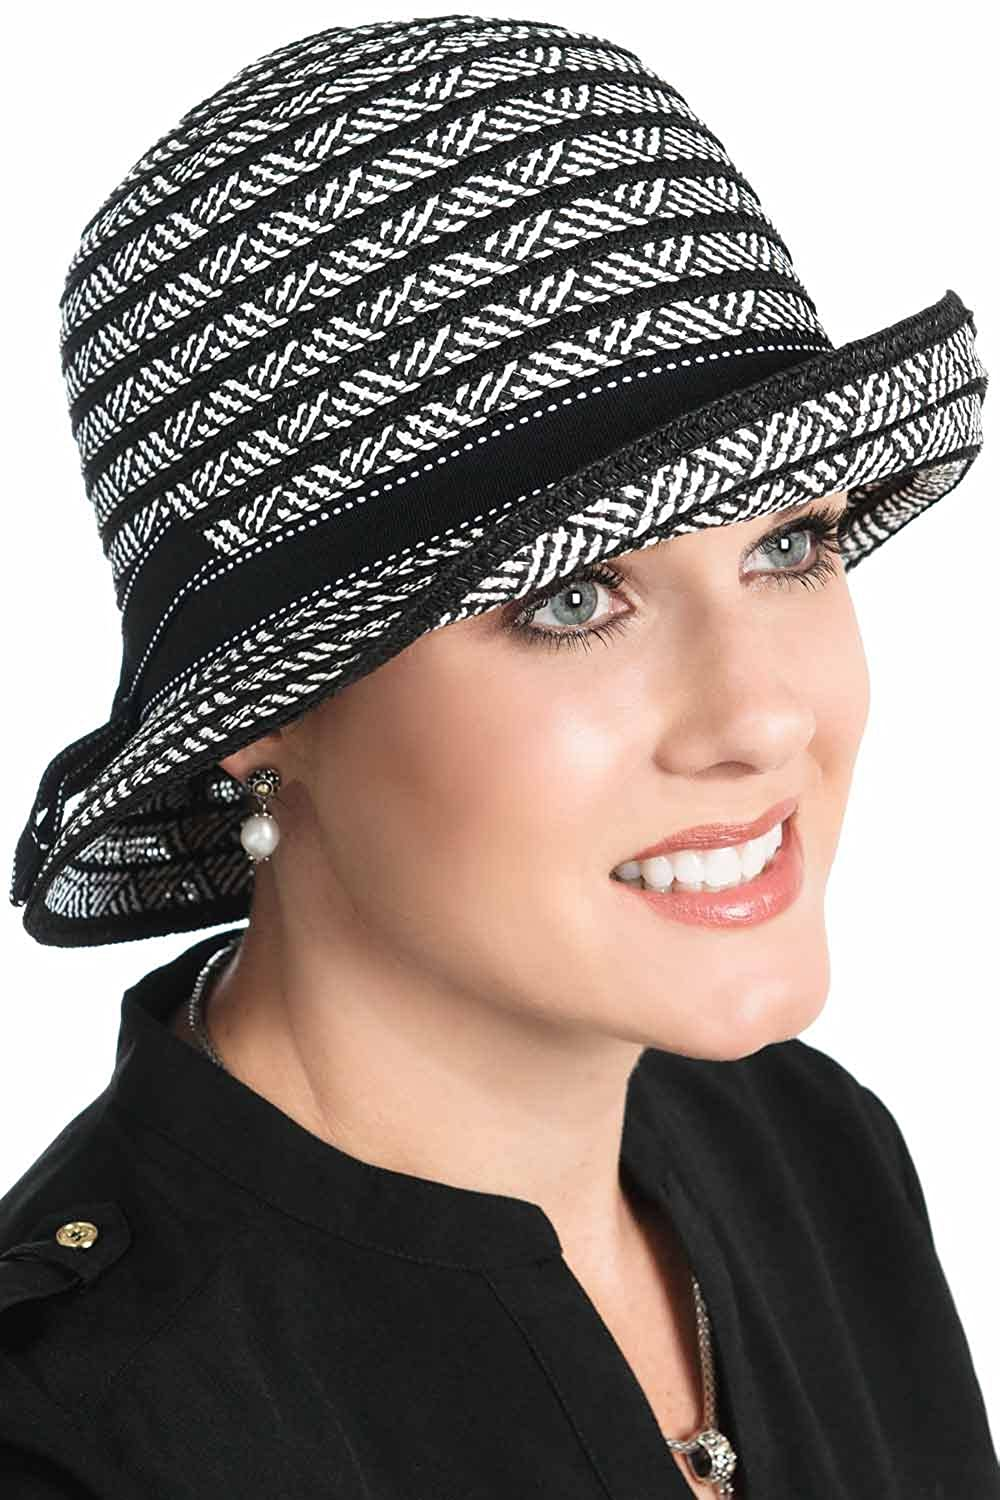 fc4ab96c Headcovers Unlimited Mariah Bucket Hat for Women with Cancer, Chemo,  Alopecia Mariah - Black at Amazon Women's Clothing store: